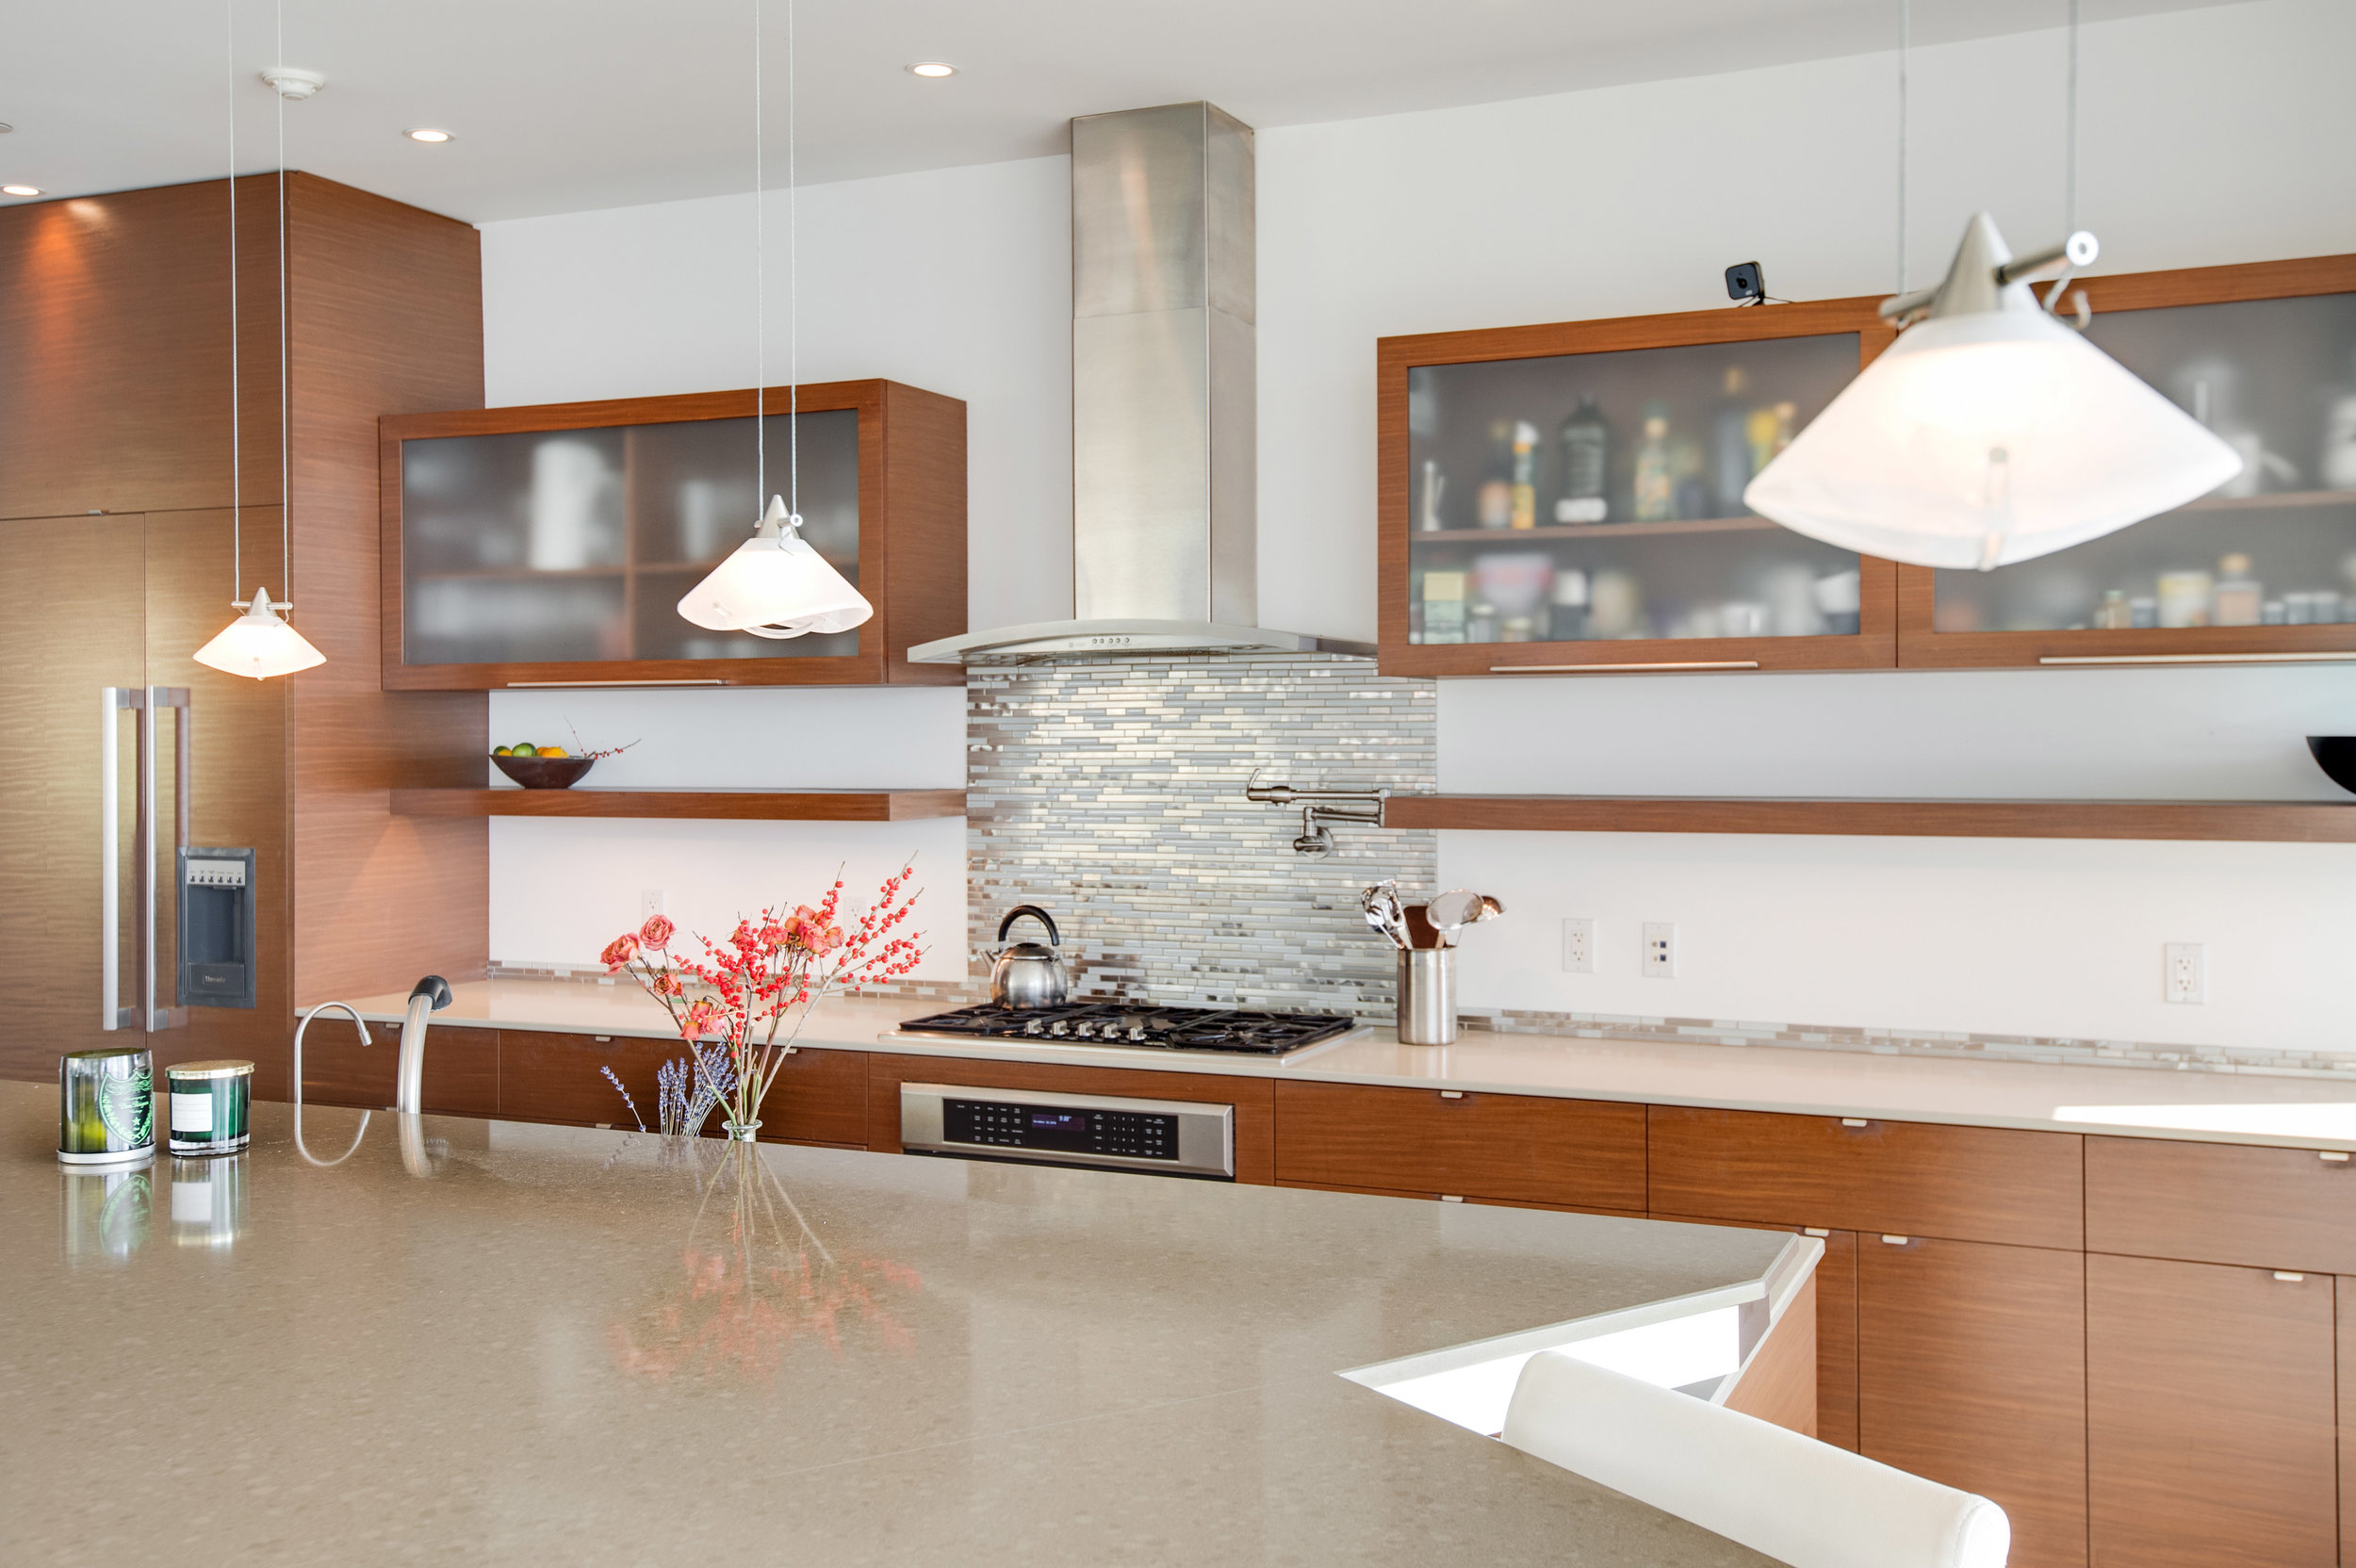 Copy of 003.2 Kitchen 20729 Eaglepass For Sale Lease The Malibu Life Team Luxury Real Estate.jpg